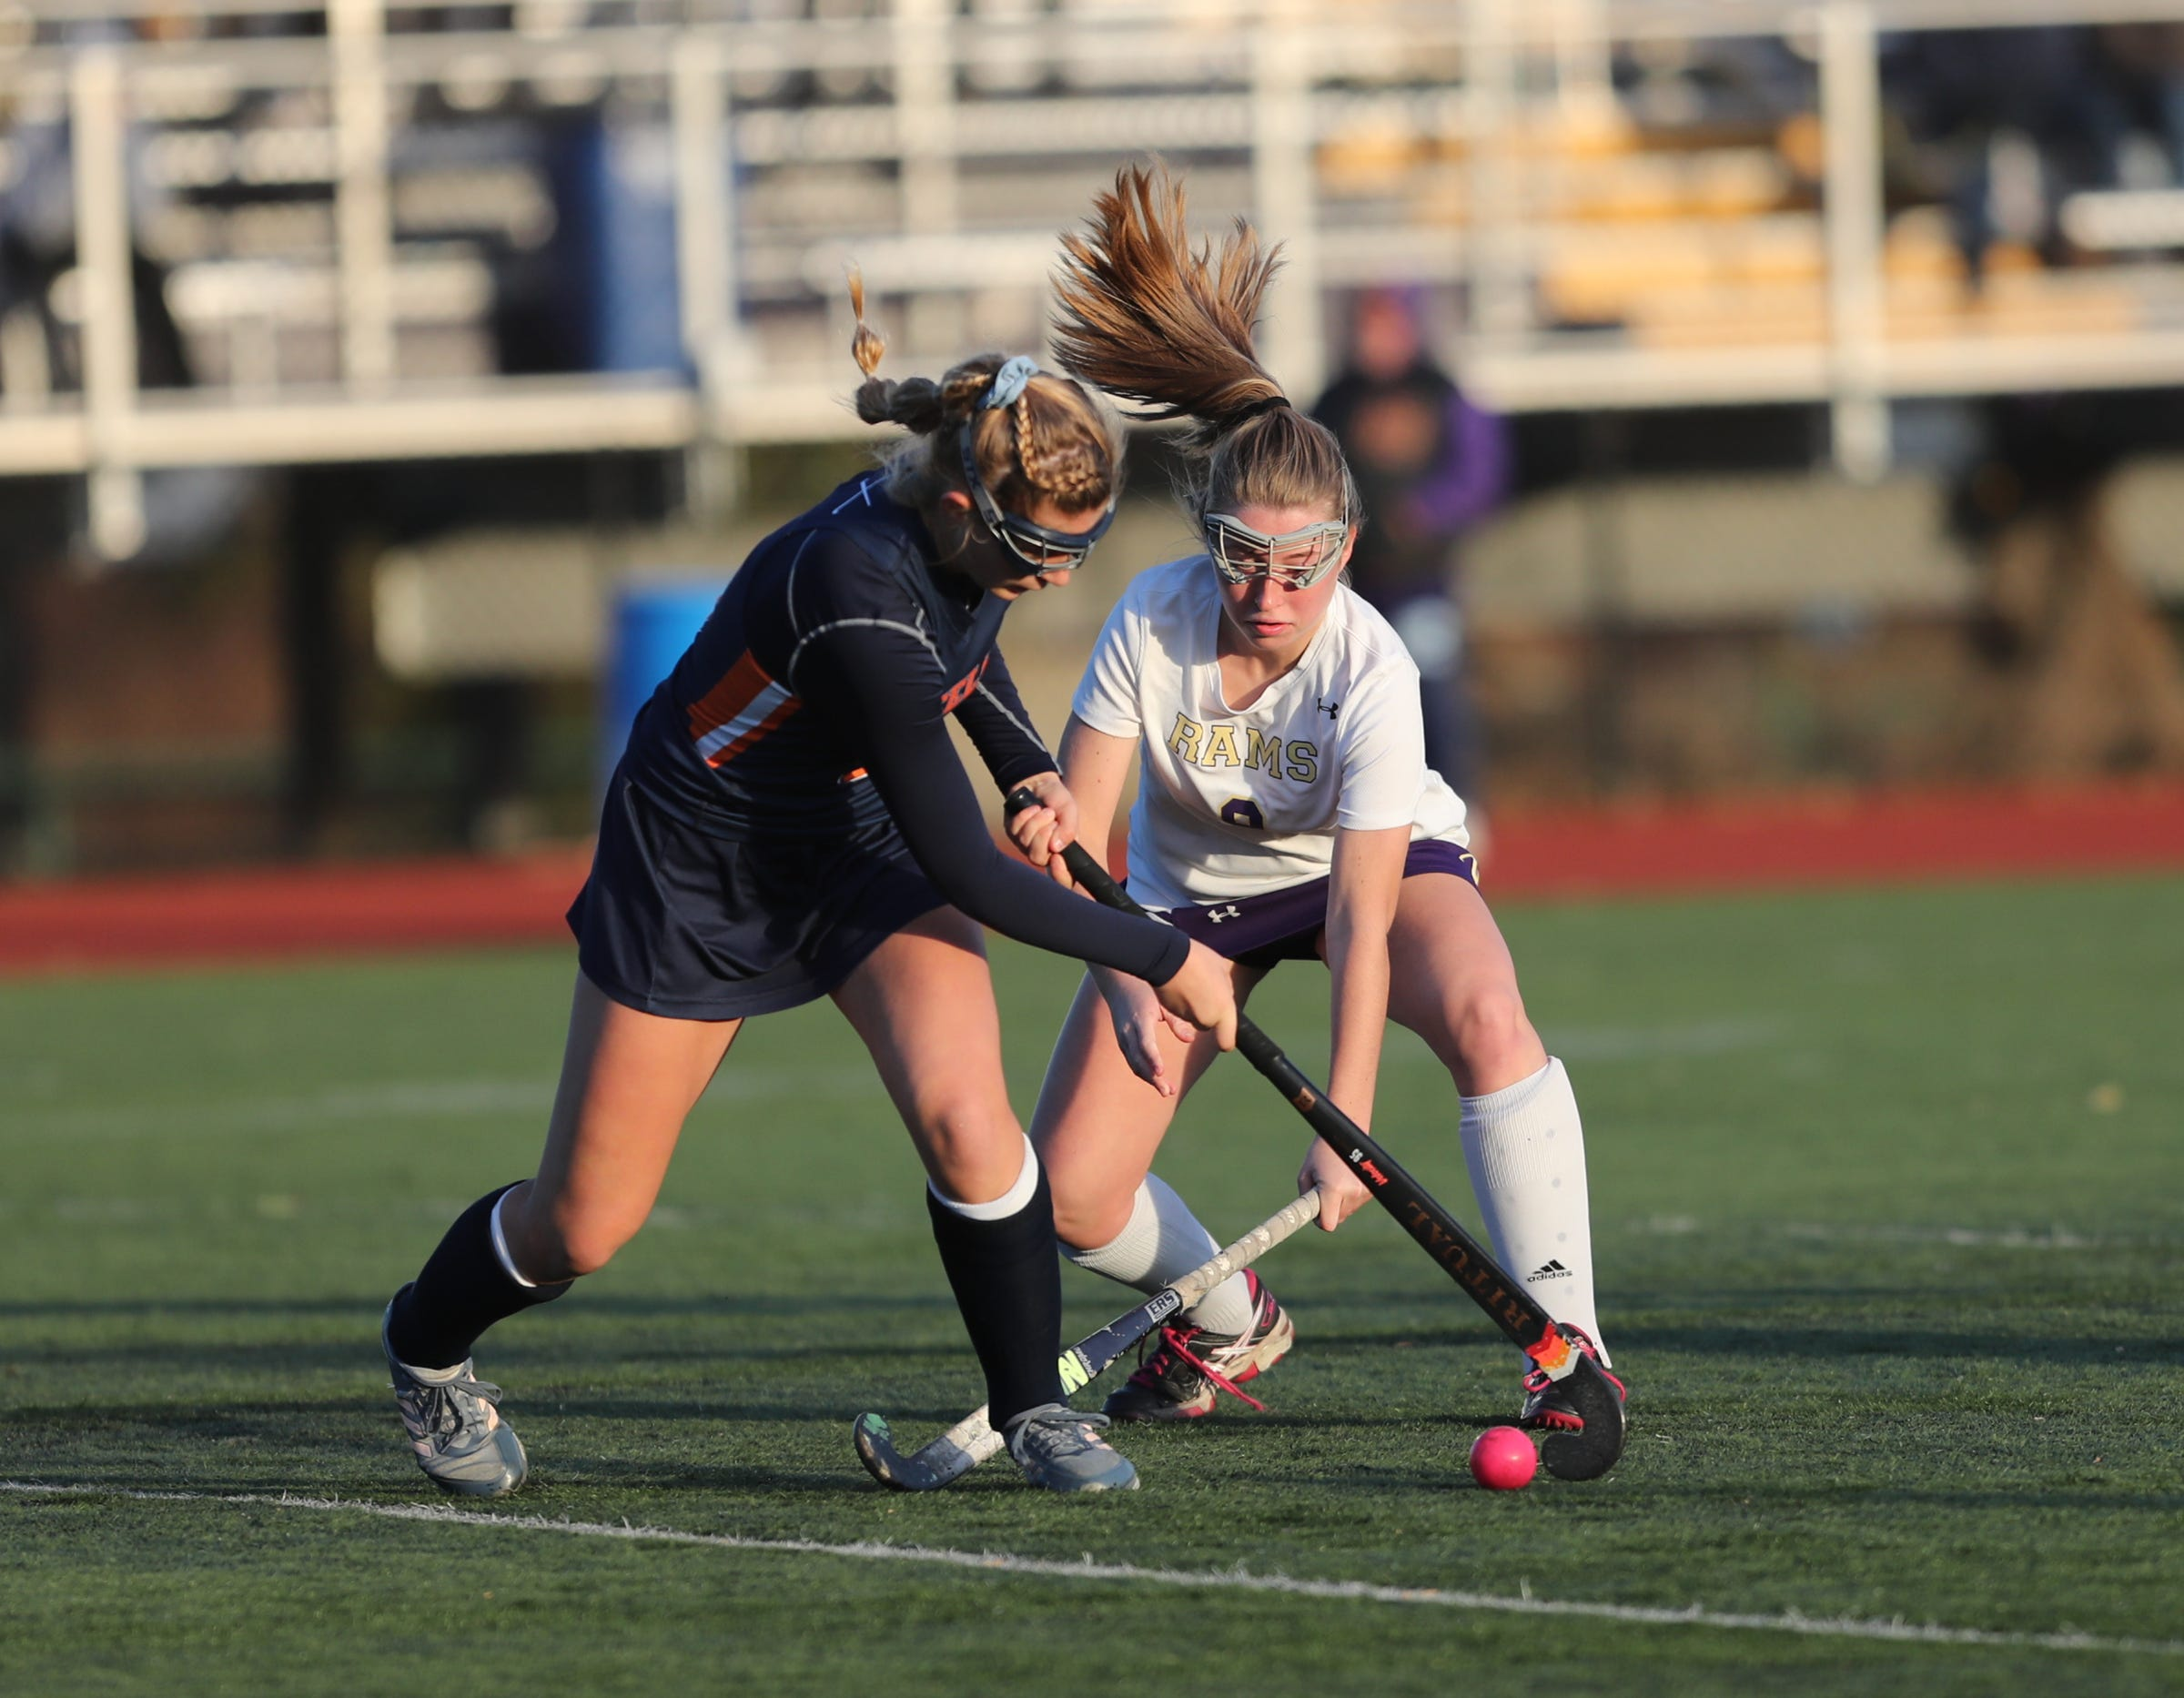 Field hockey: Horace Greeley tops Clarkstown North to return